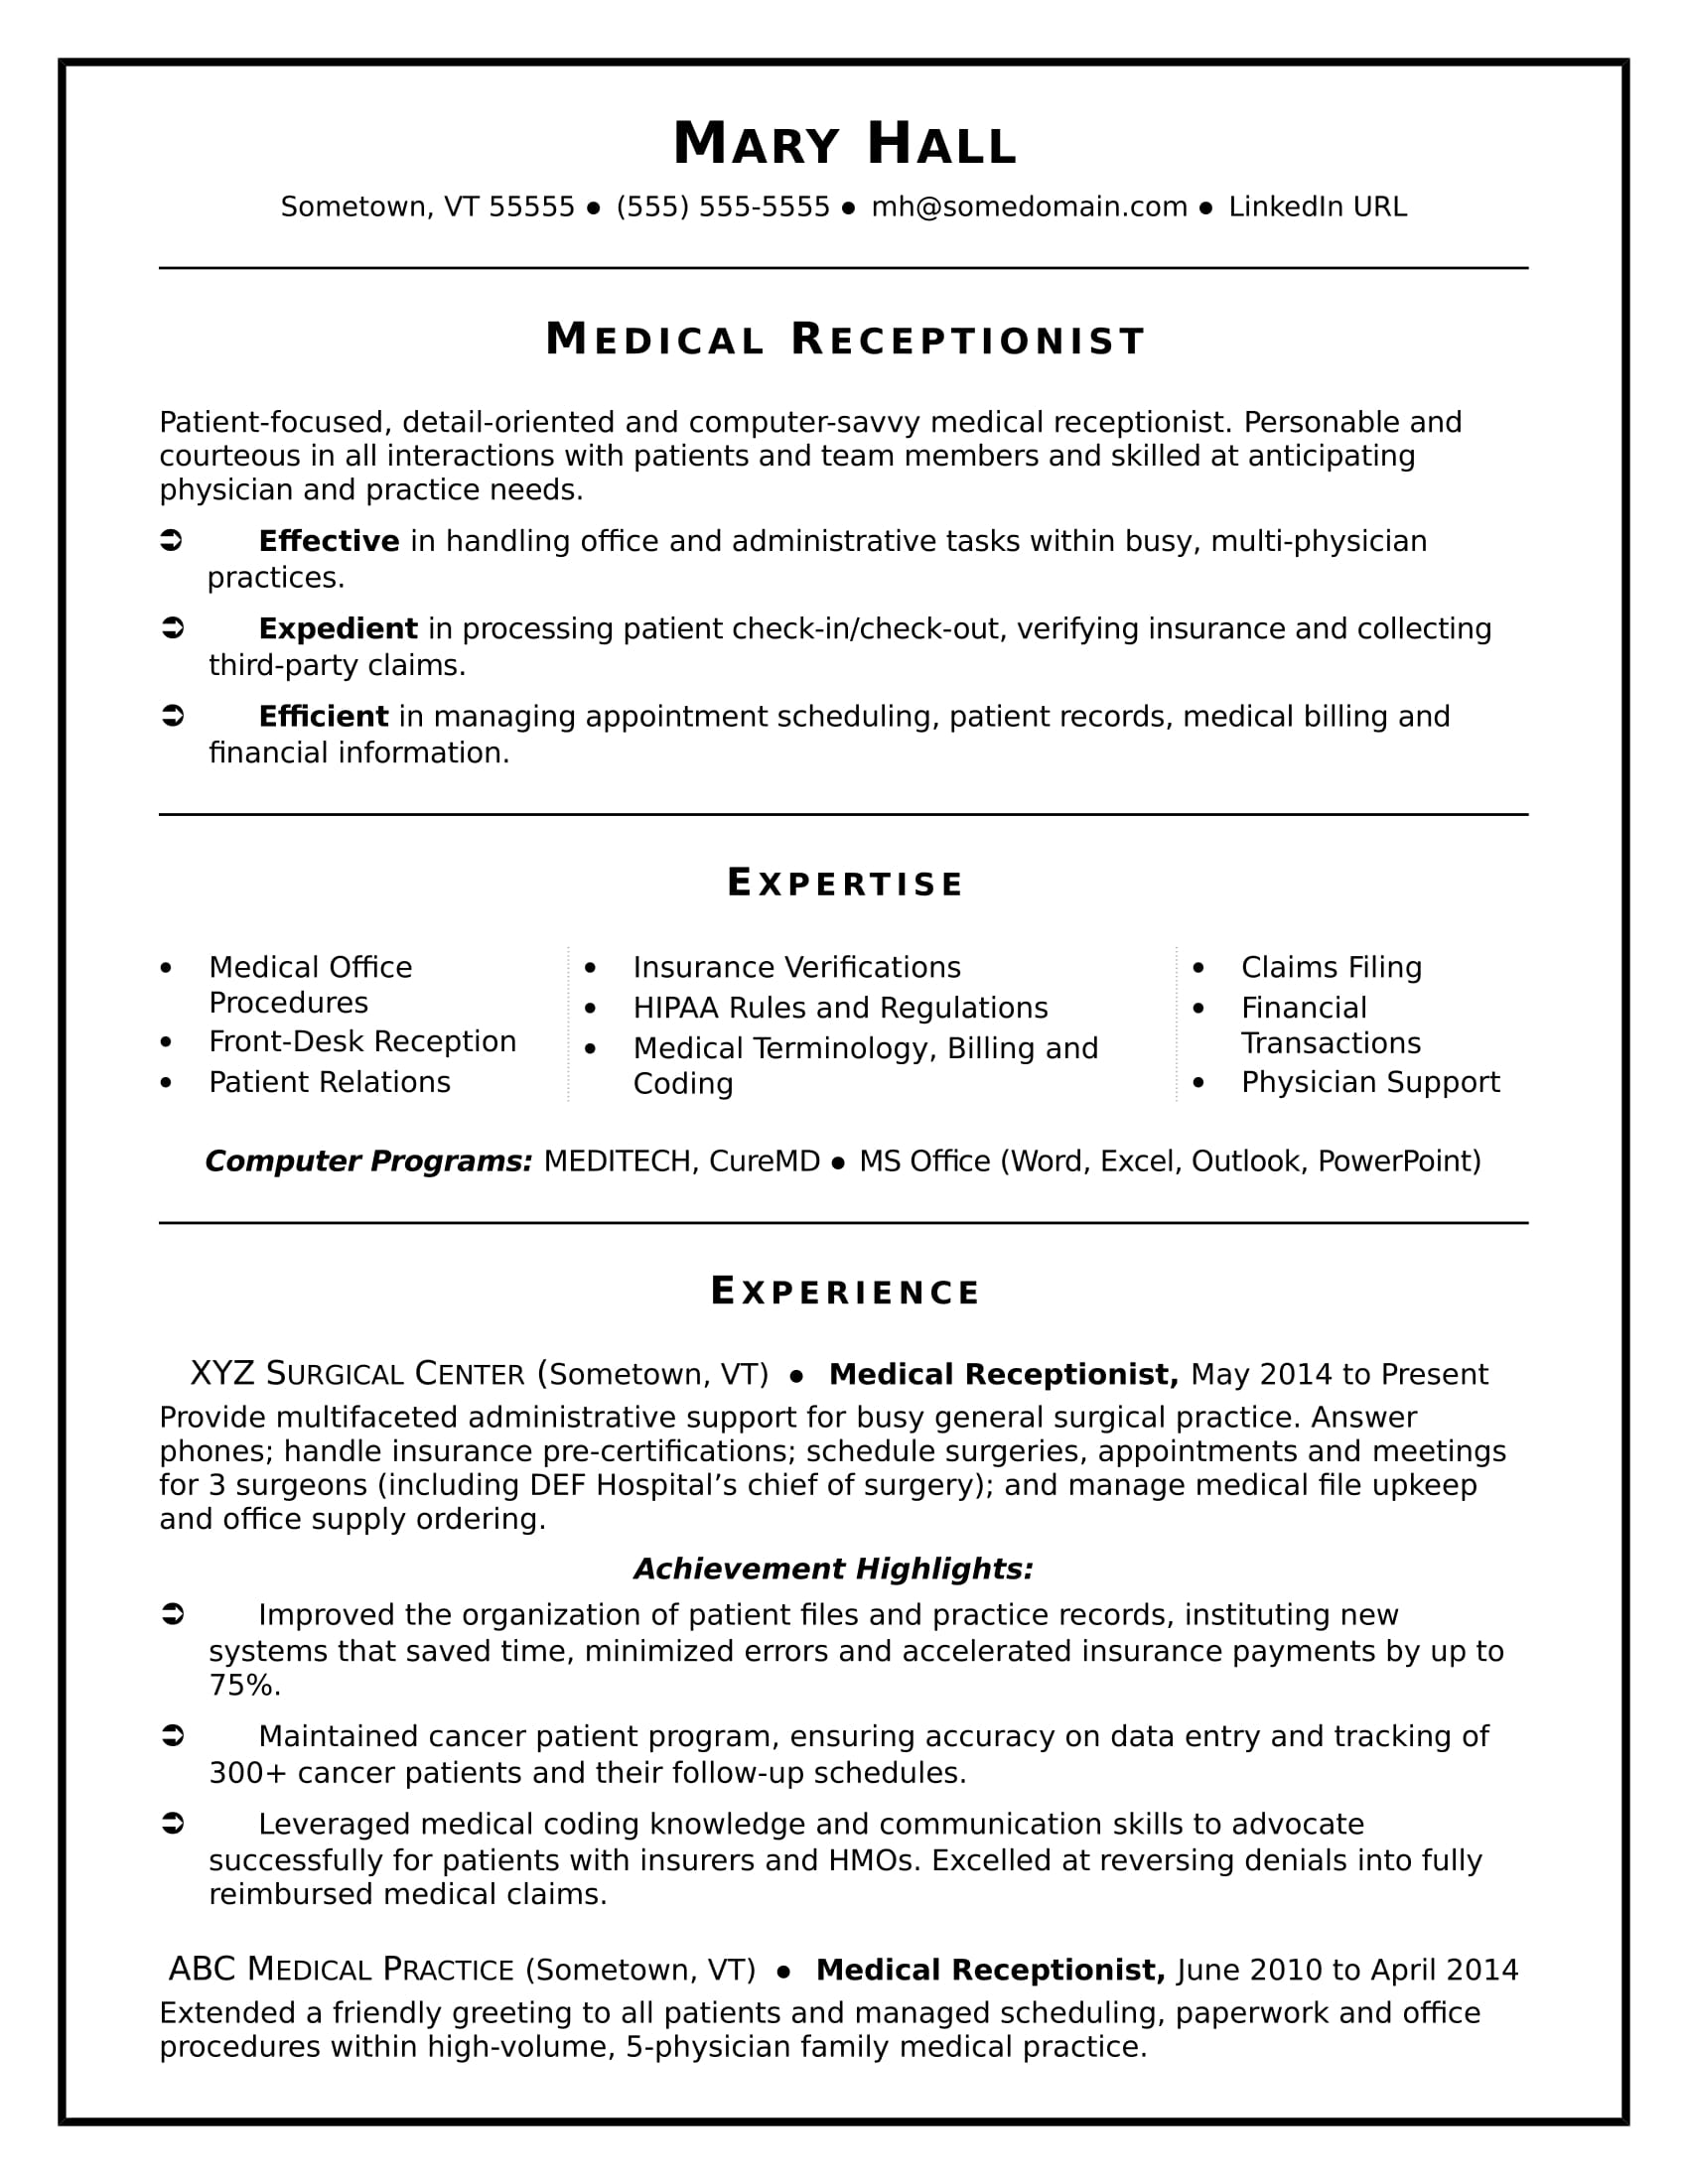 Medical receptionist resume template boatremyeaton medical receptionist resume template yelopaper Image collections